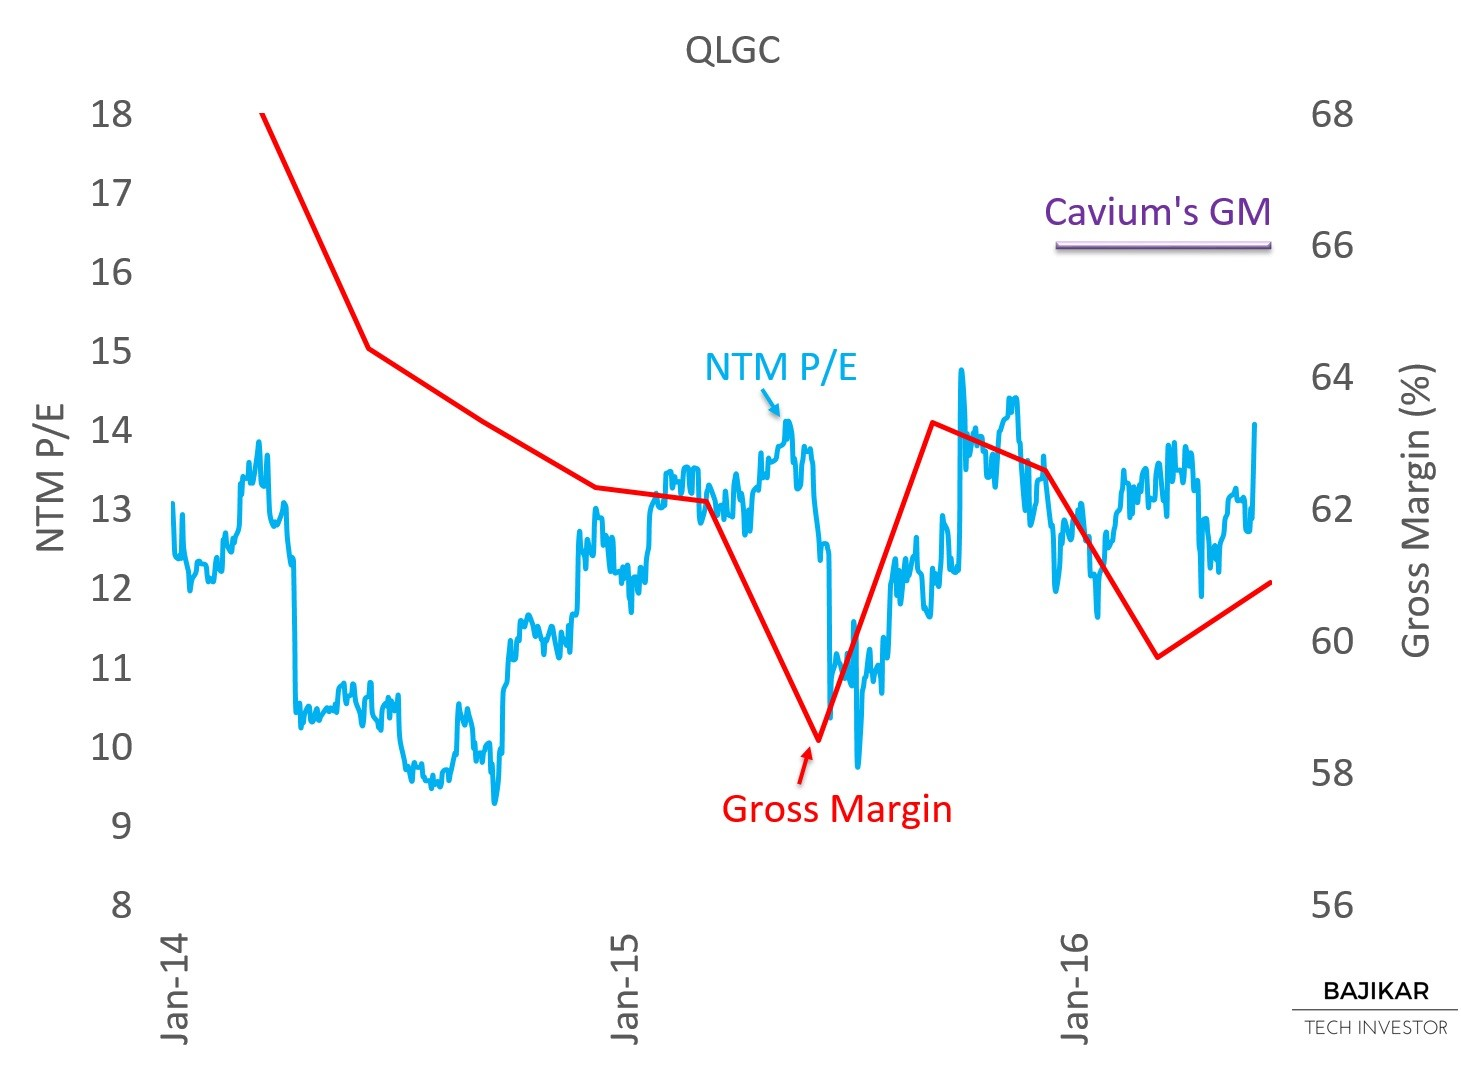 QLGC P/E vs. Gross Margins